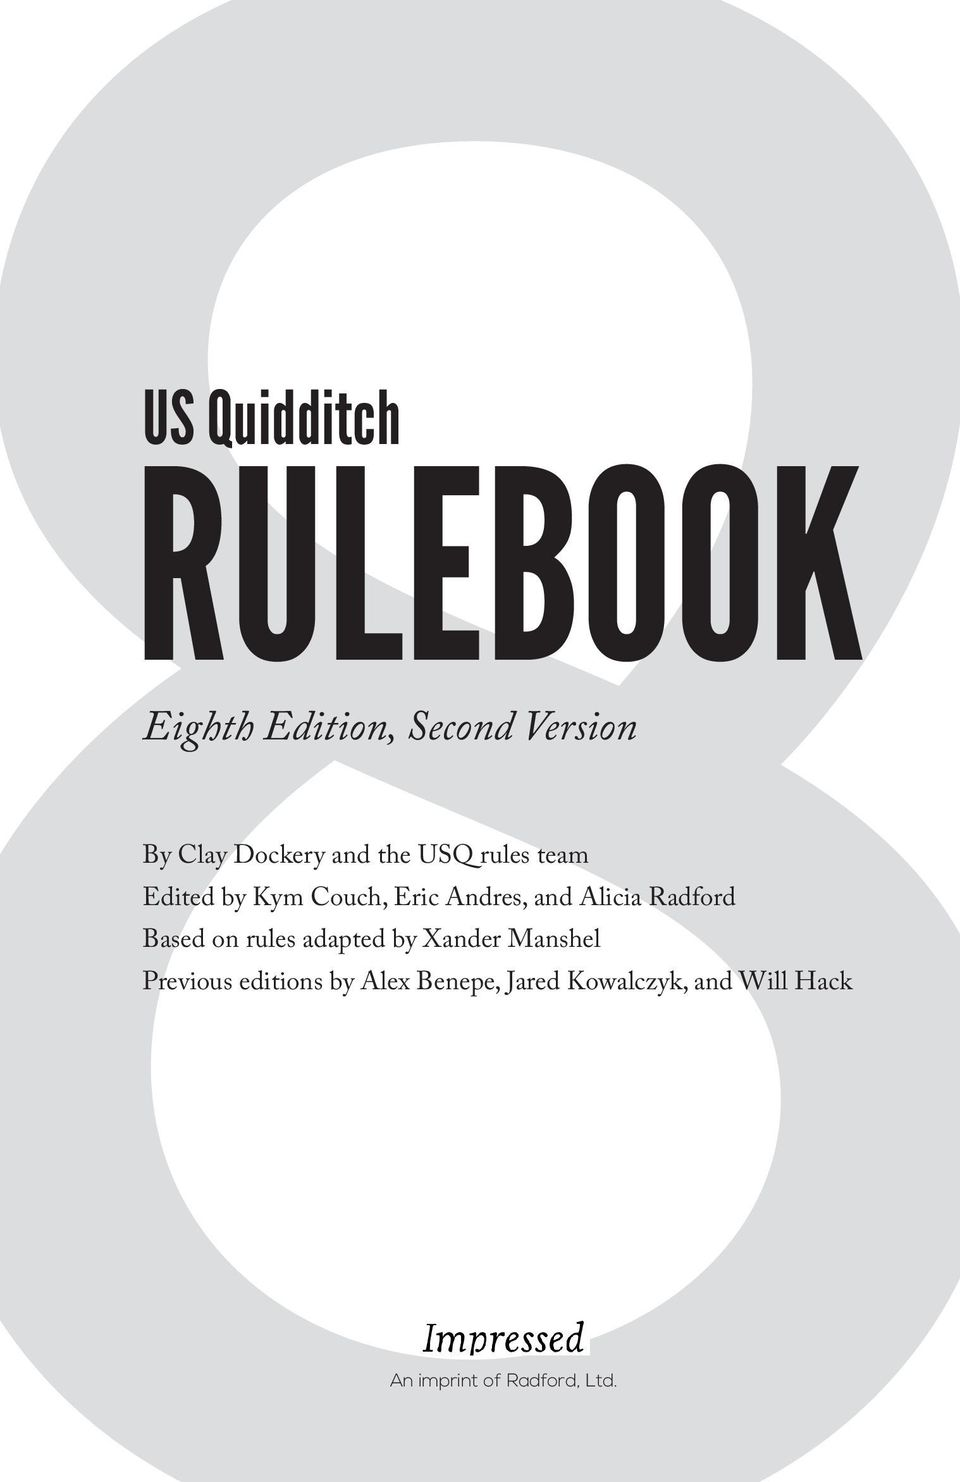 Radford Based on rules adapted by Xander Manshel Previous editions by